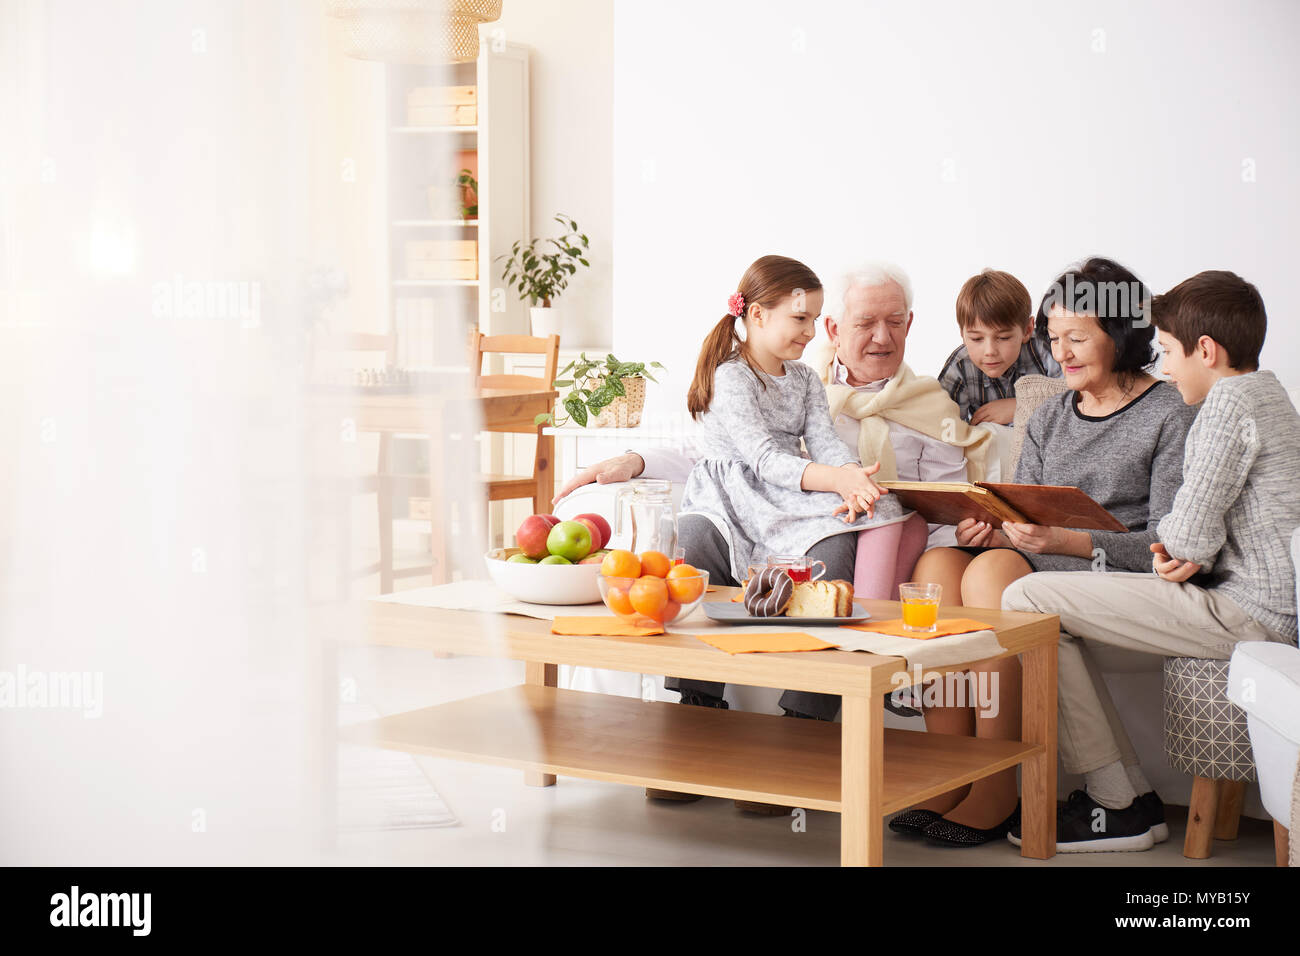 Happy grandparents showing photo album to their grandchildren in a living room - Stock Image